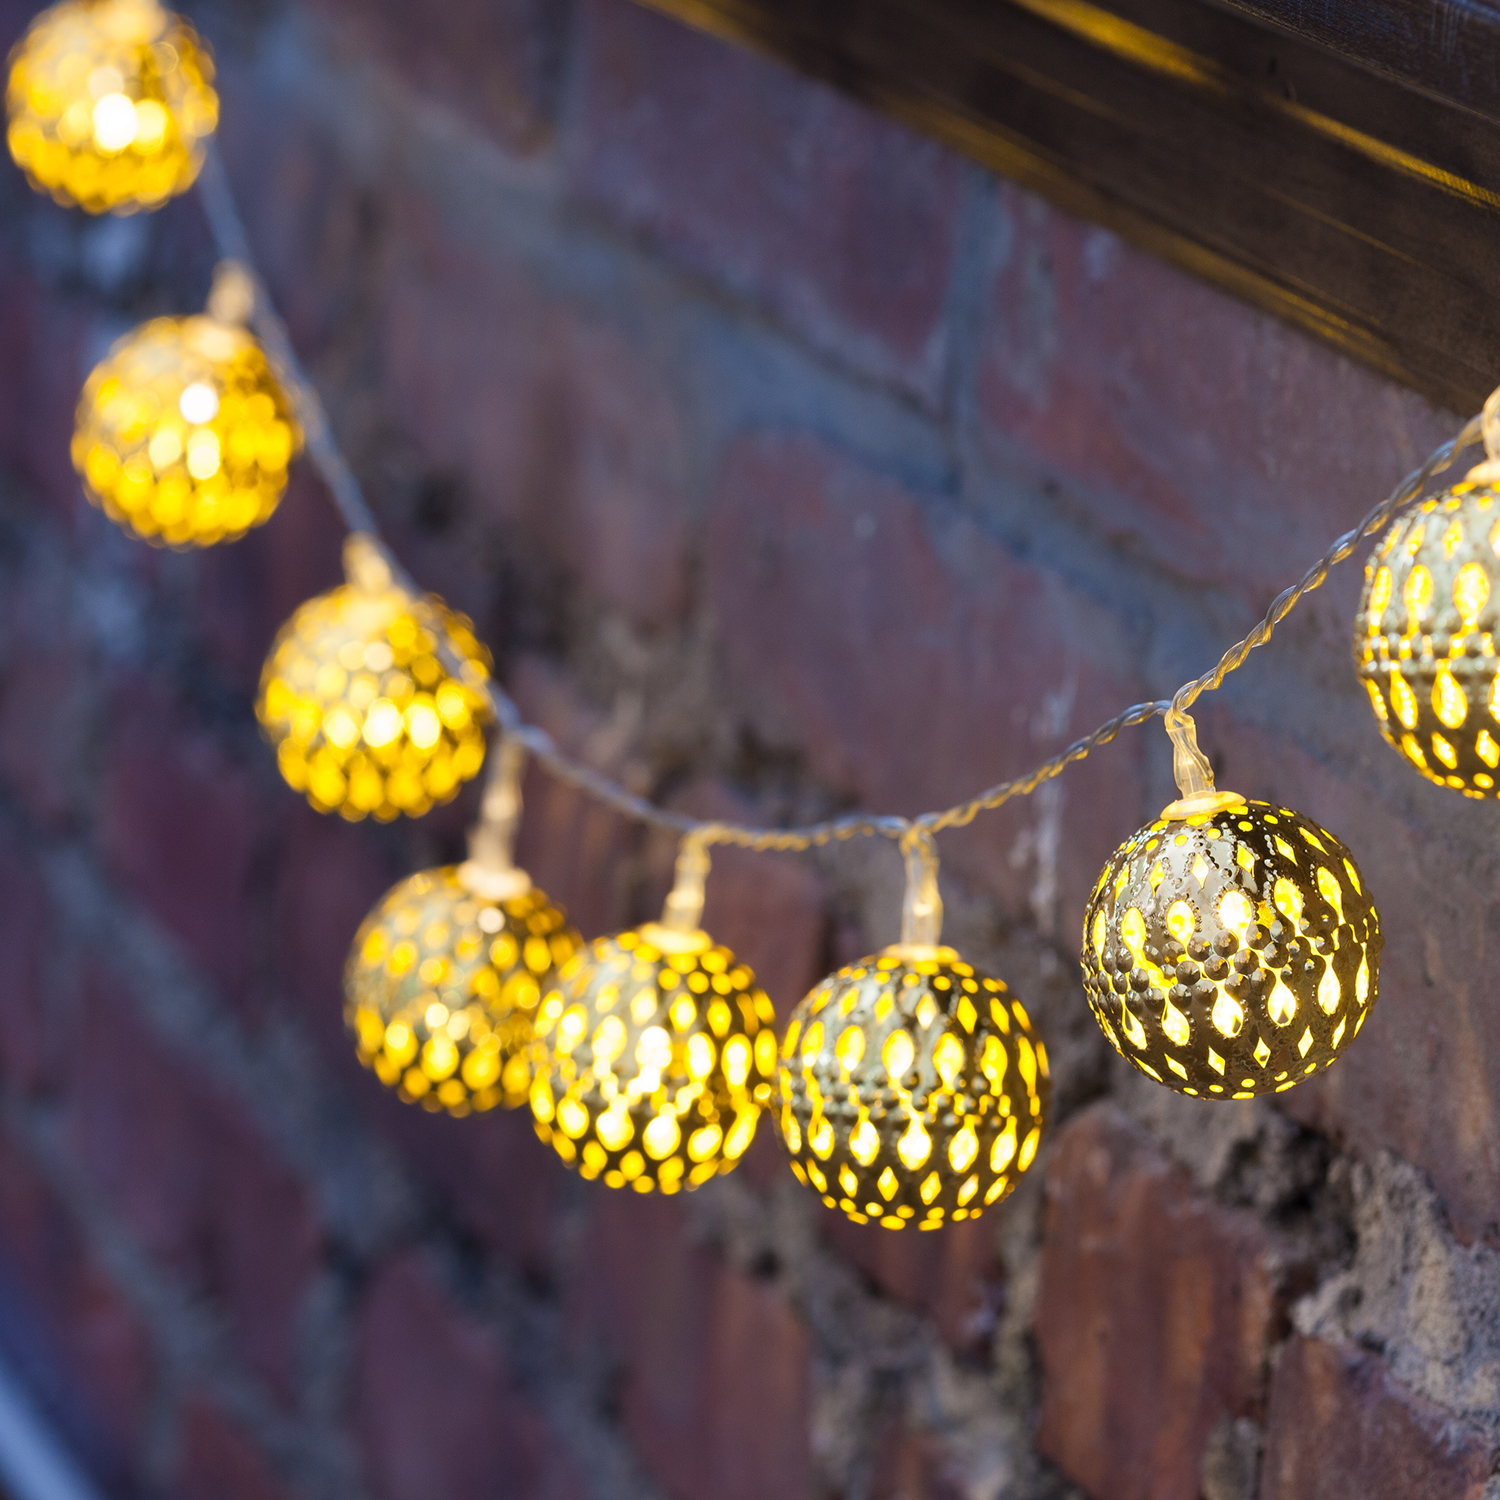 Vintage outdoor string lights ideas homesfeed luxurious vintage string lights idea for outdoor mozeypictures Choice Image